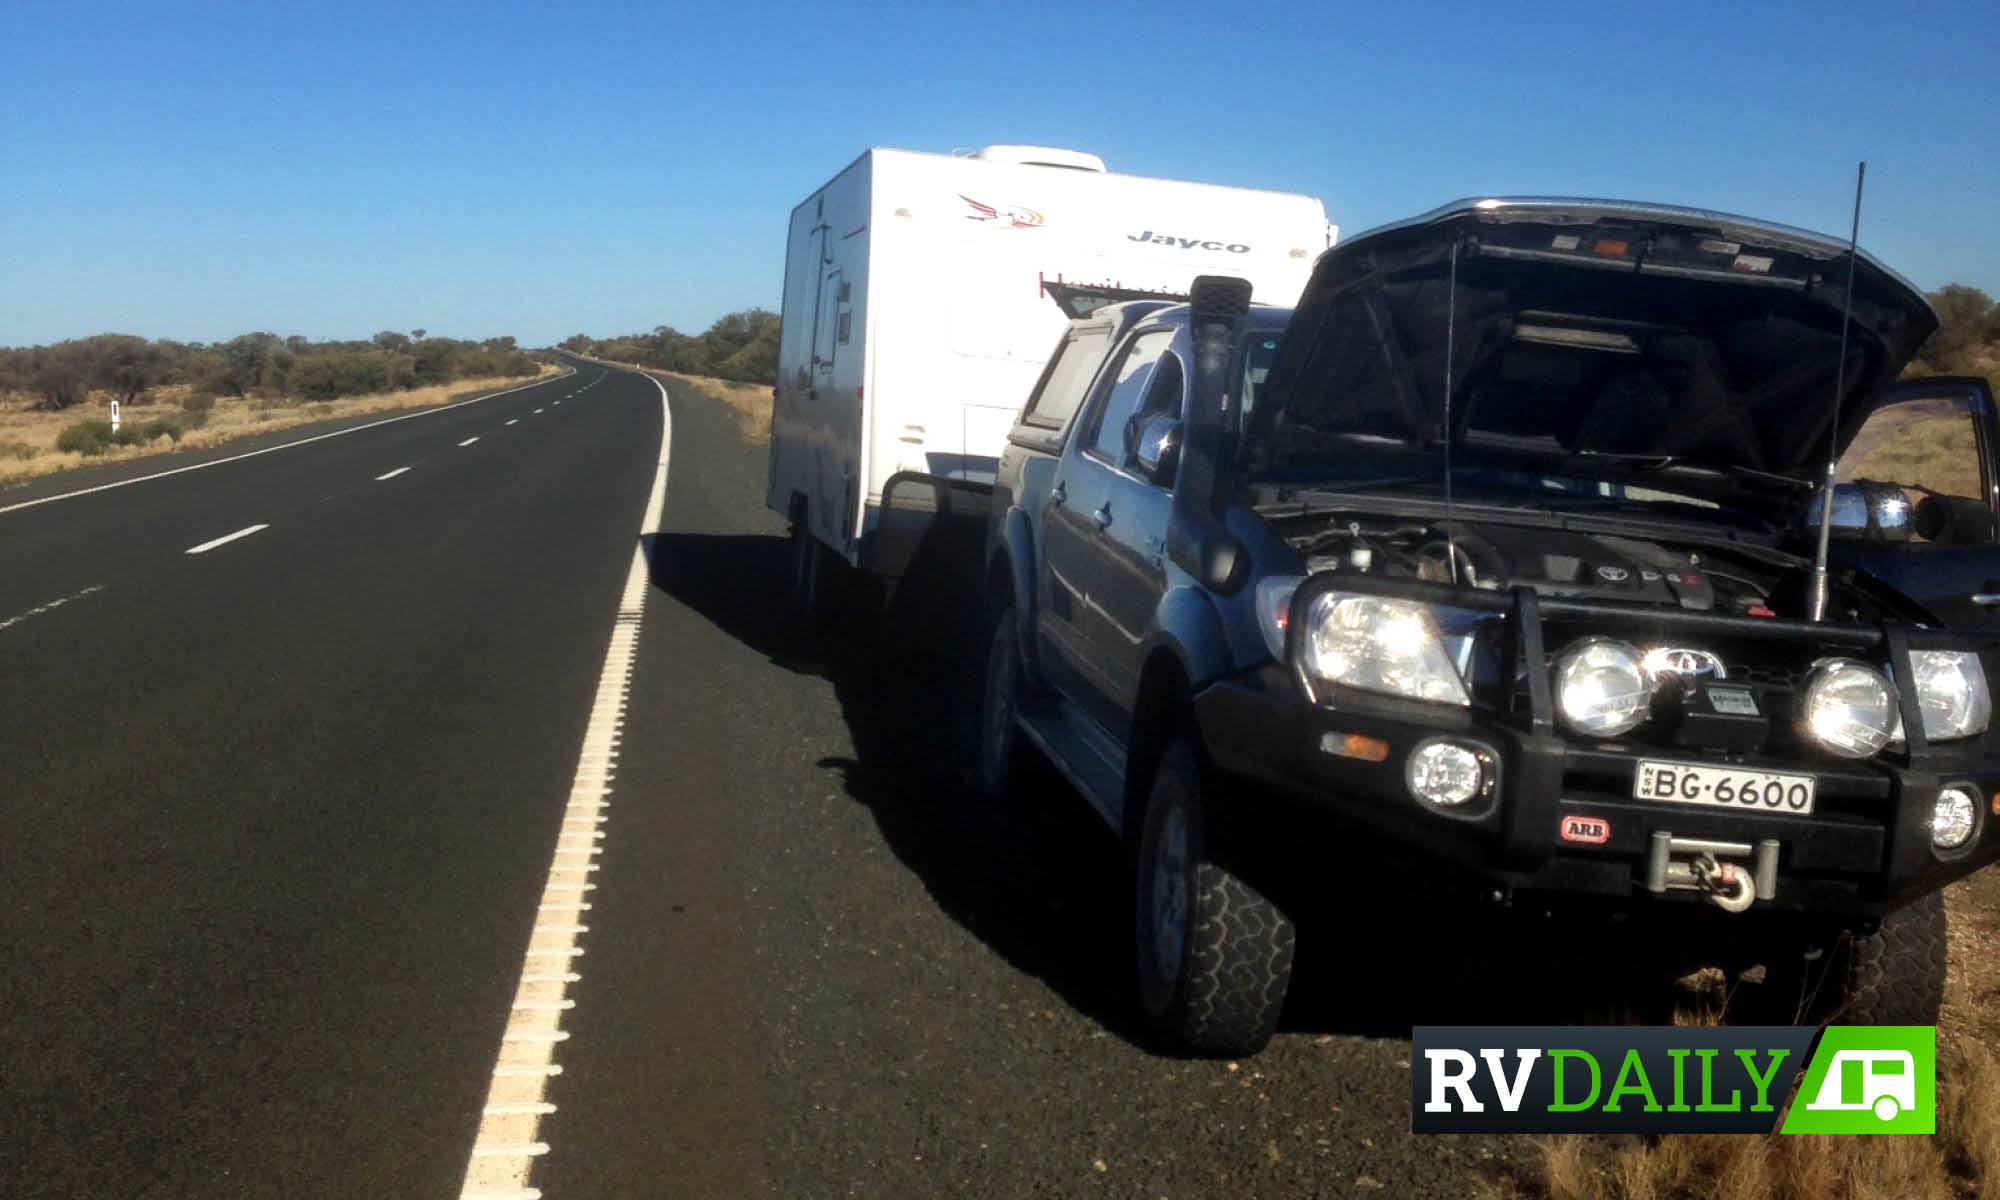 NOT ALL ROADSIDE ASSIST  IS CREATED EQUAL